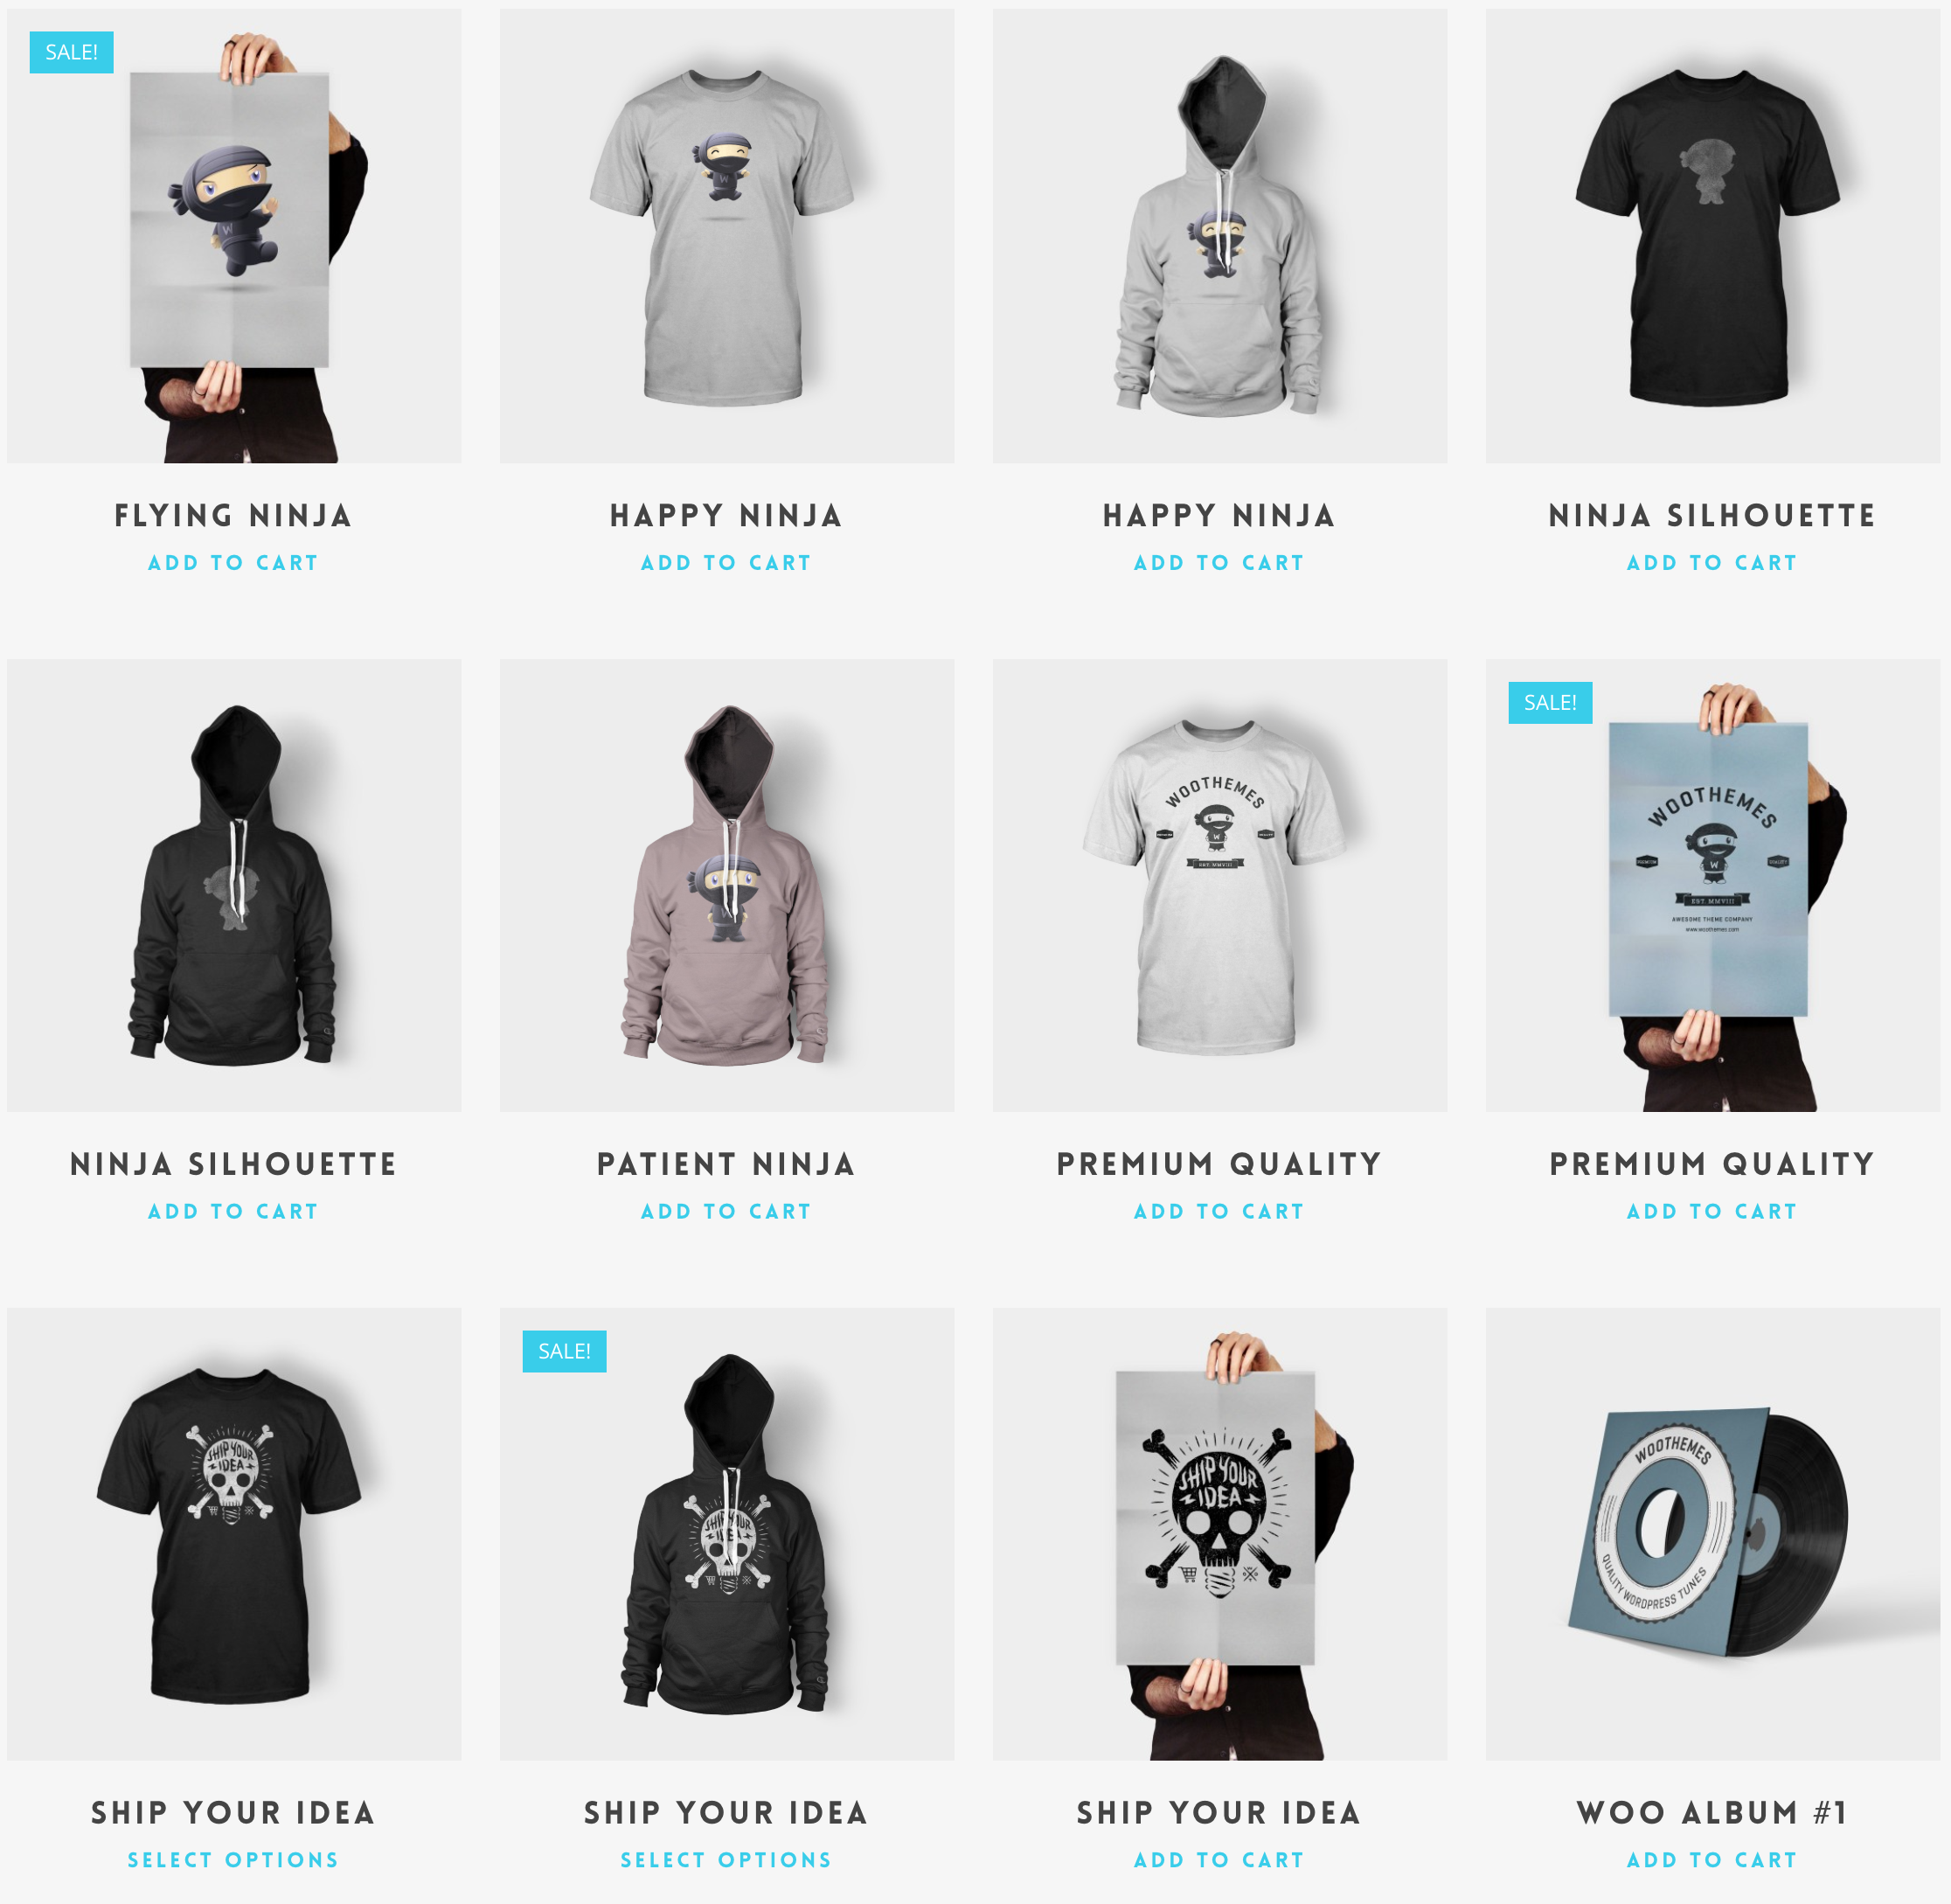 Import Woocommerce Products into a Demo WordPress site